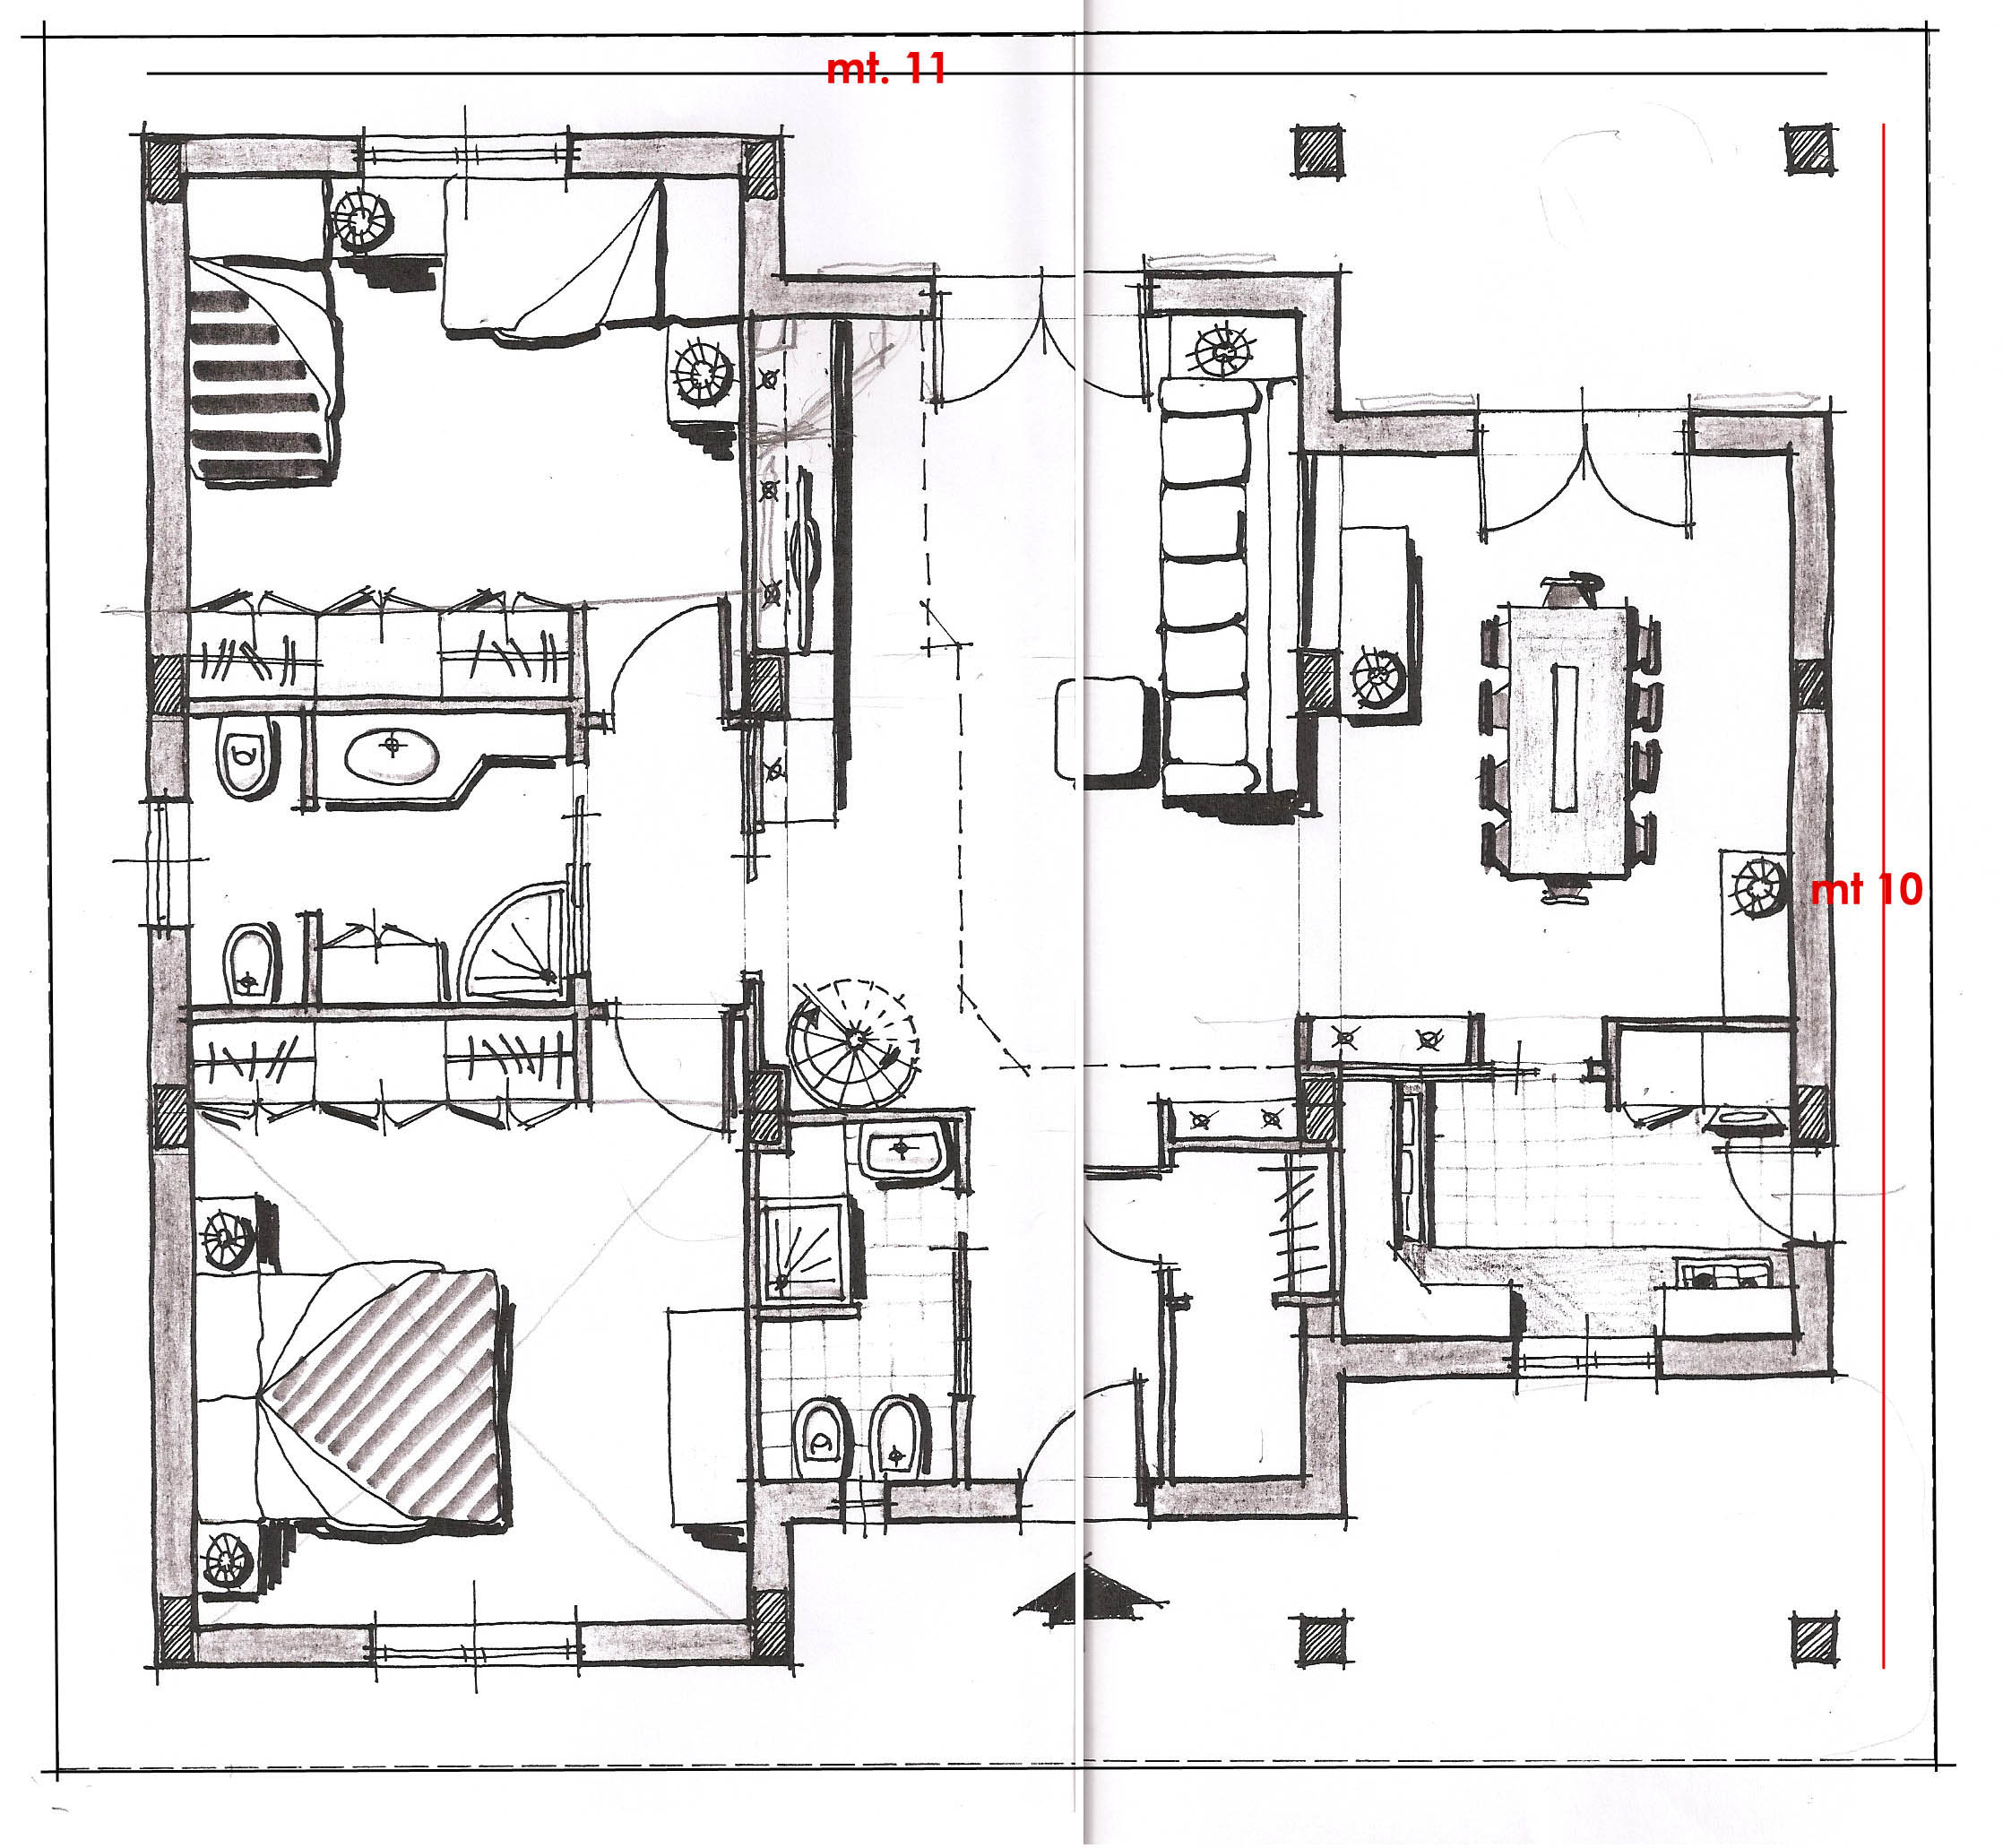 Gruppo forest 13621443911 progetto gruppo forest for Gruppo forest